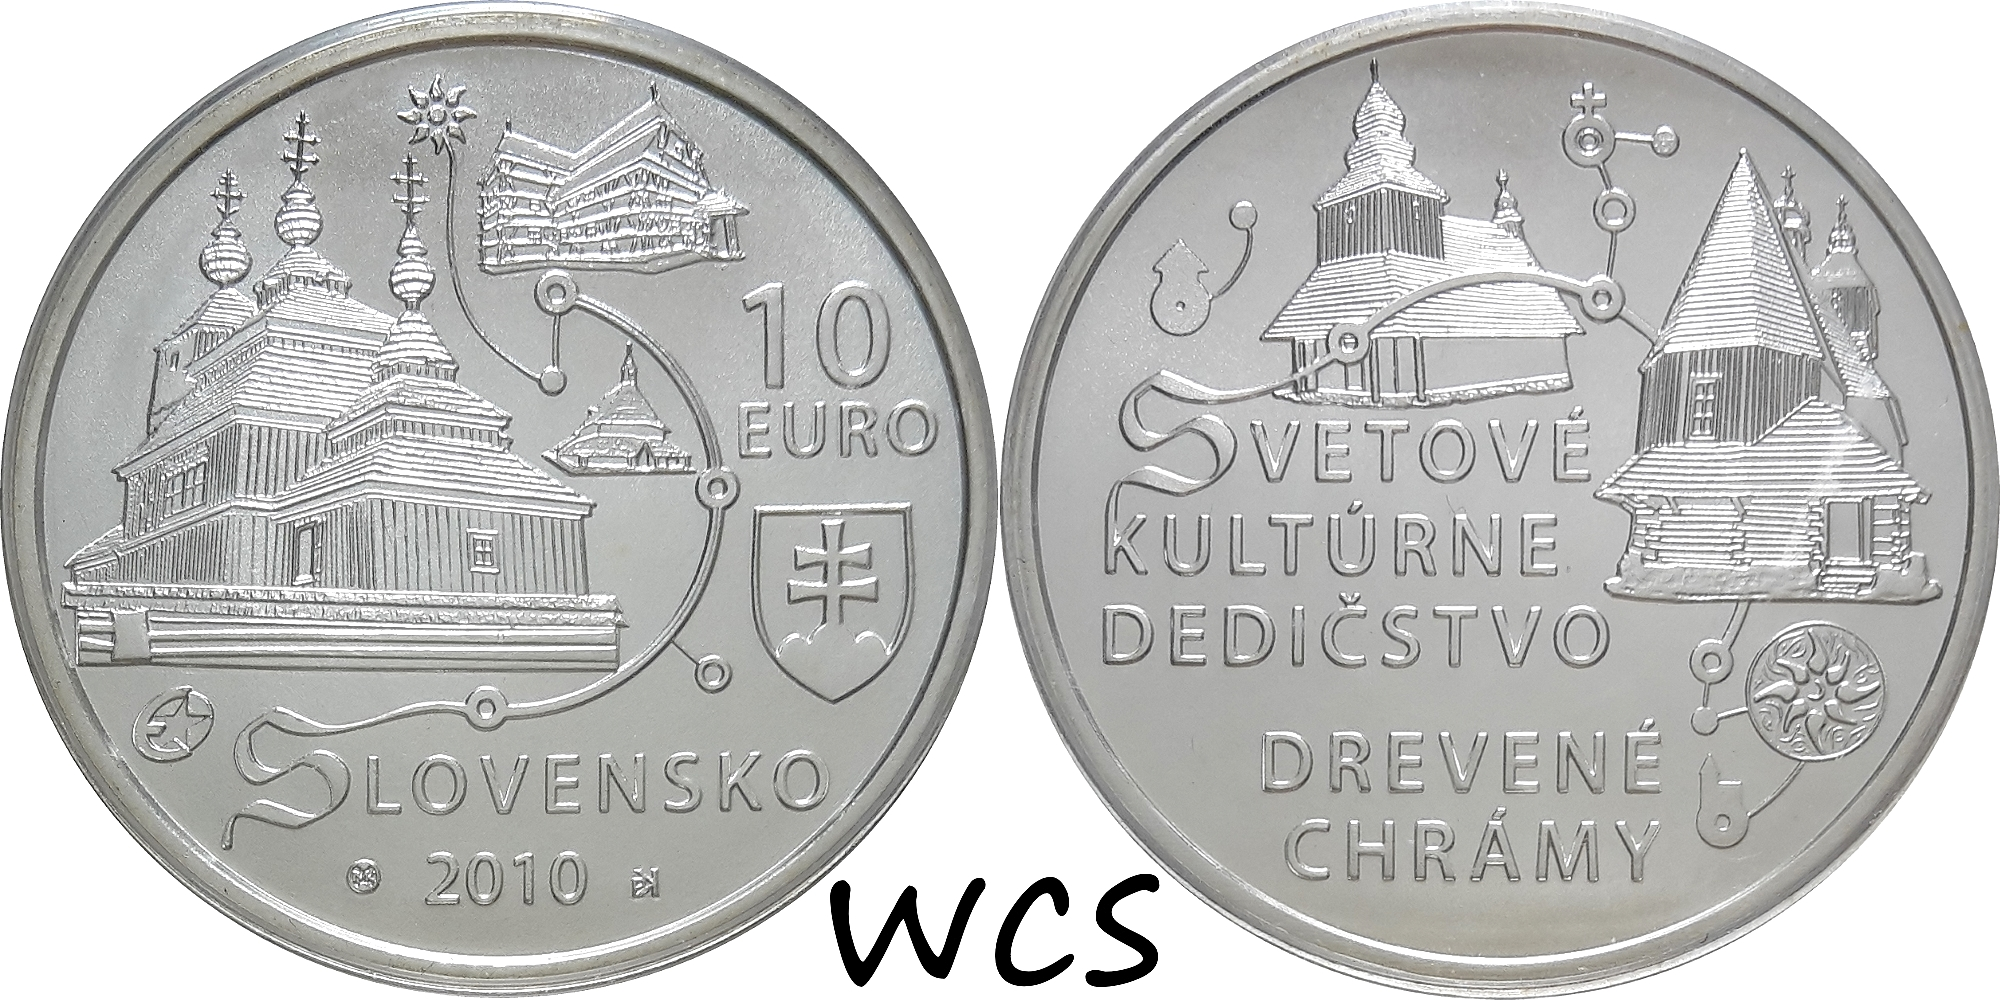 Slovakia 10 Euro 2010 - Wooden Churches of the Carpathian Slovakia - UNESCO World Heritage